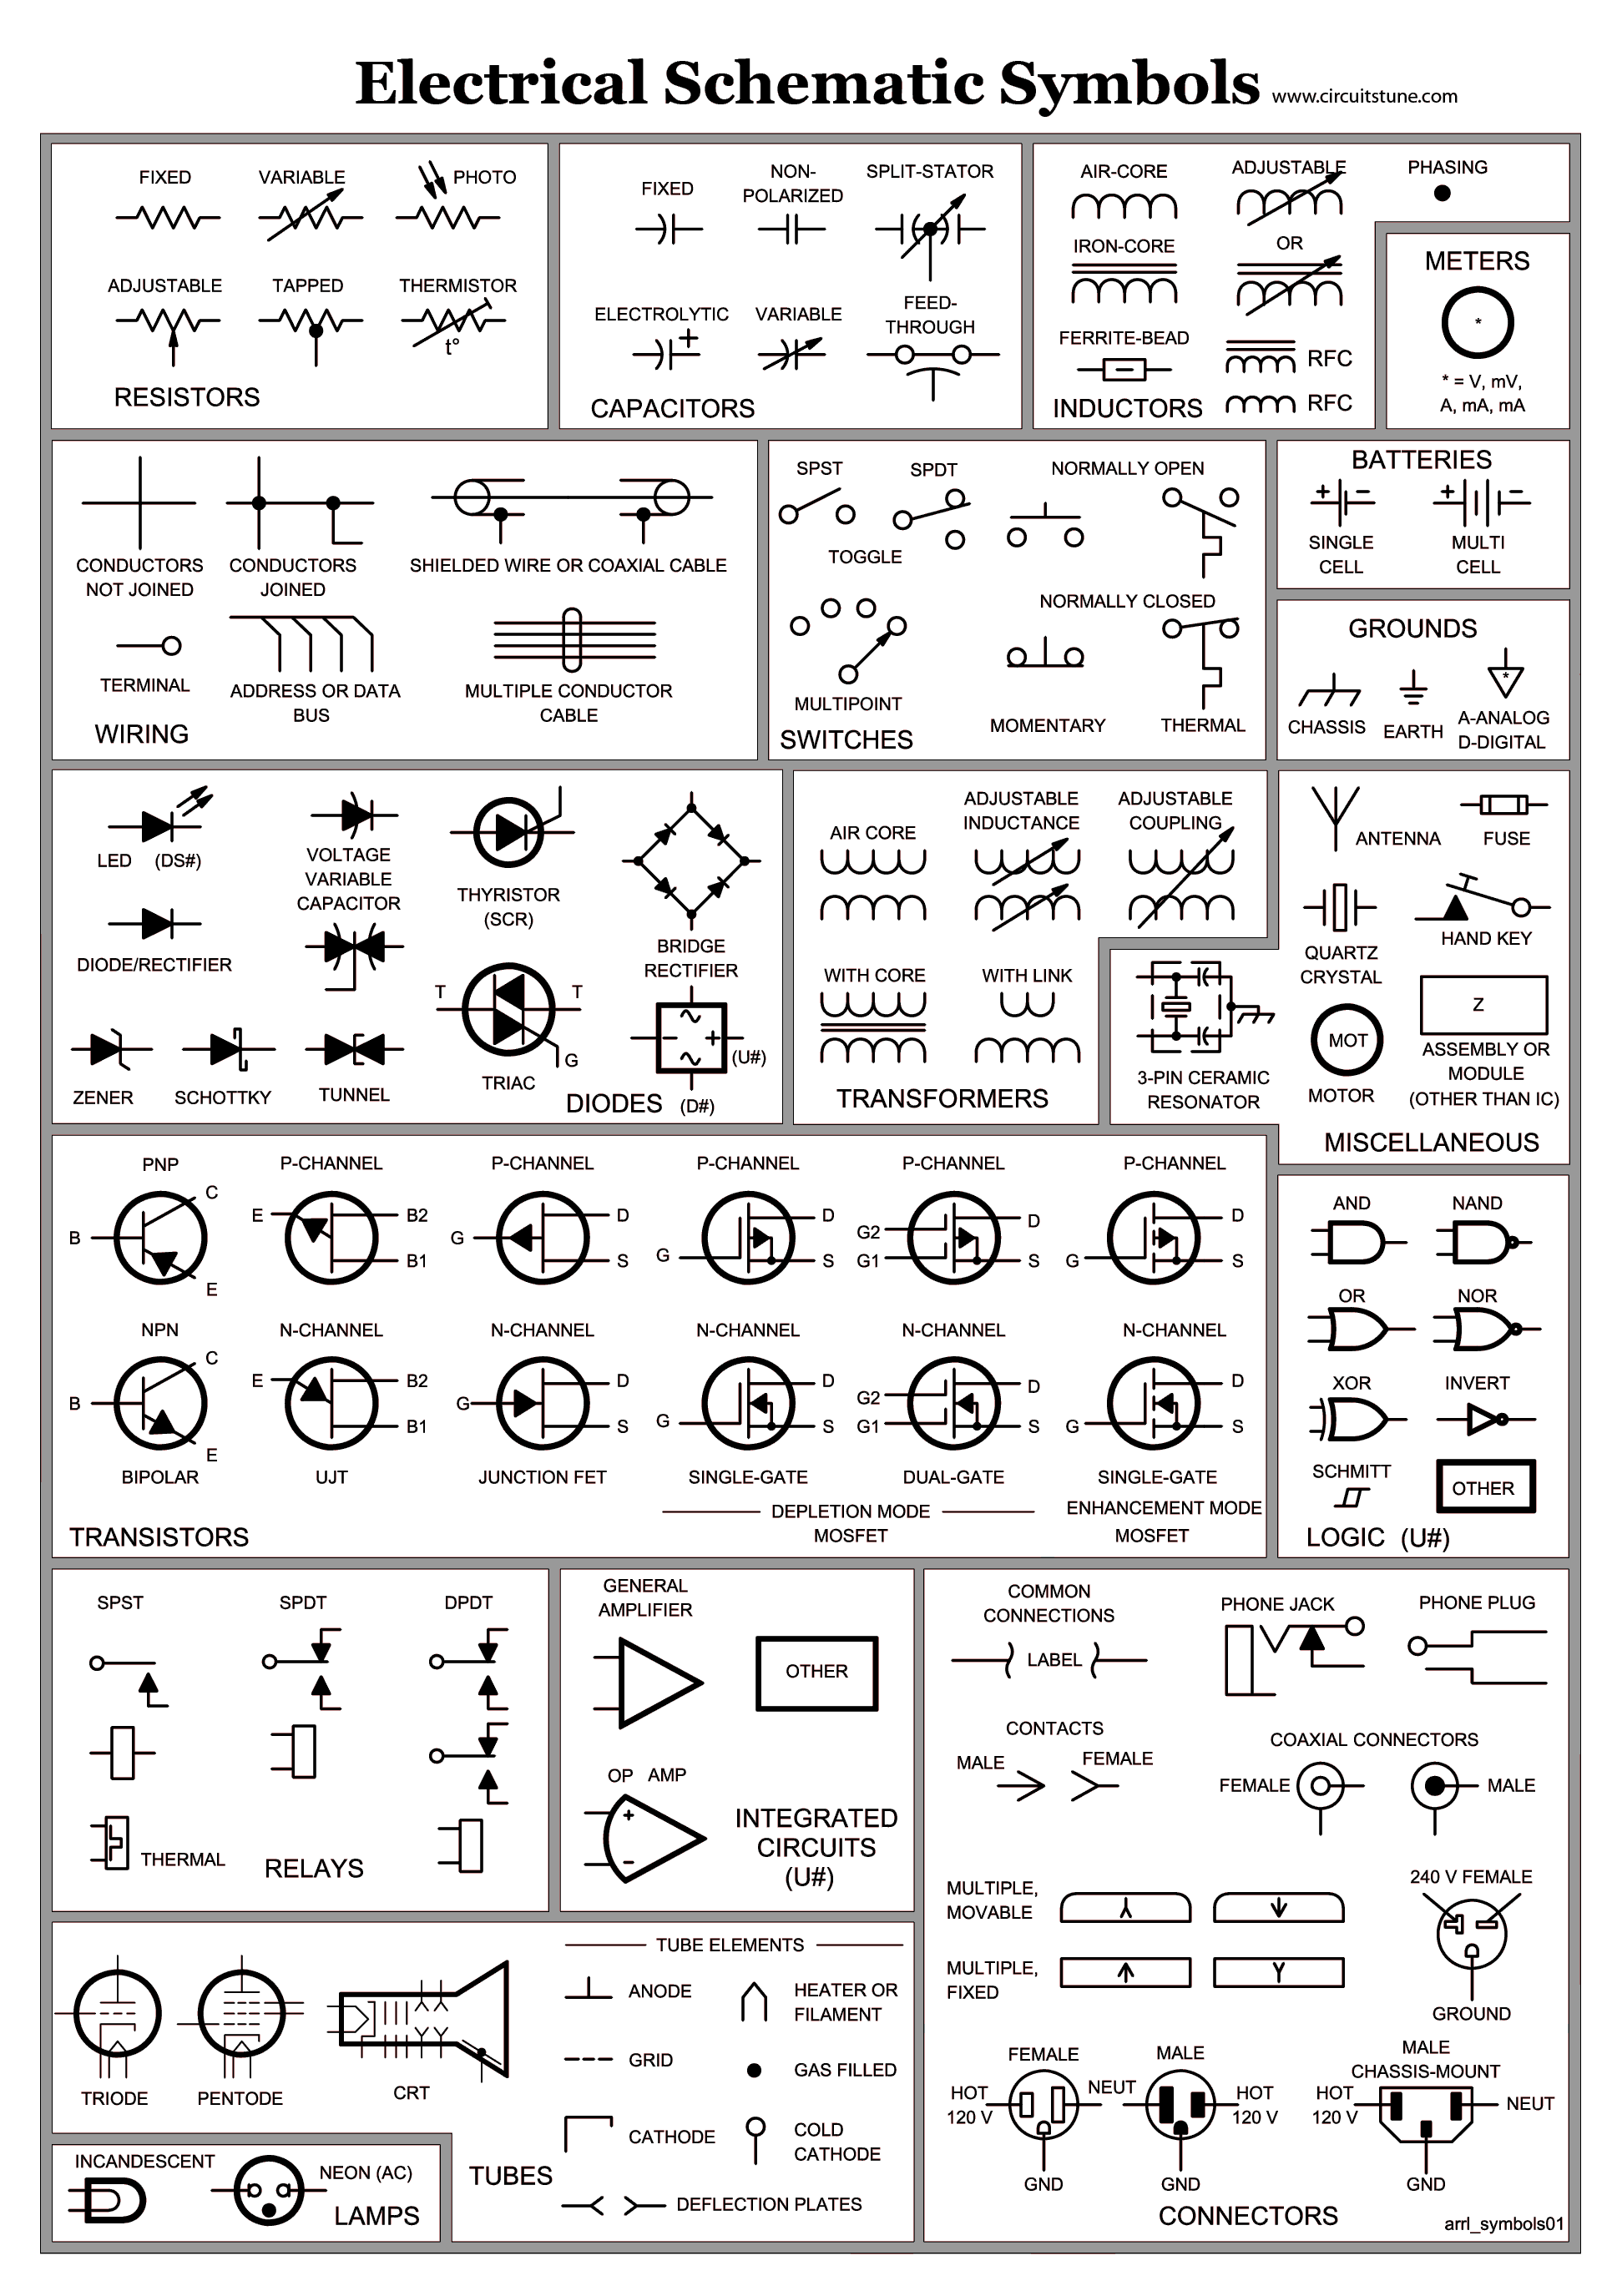 small resolution of electrical schematic symbols wire diagram symbols automotive wiringelectrical schematic symbols wire diagram symbols automotive wiring schematic